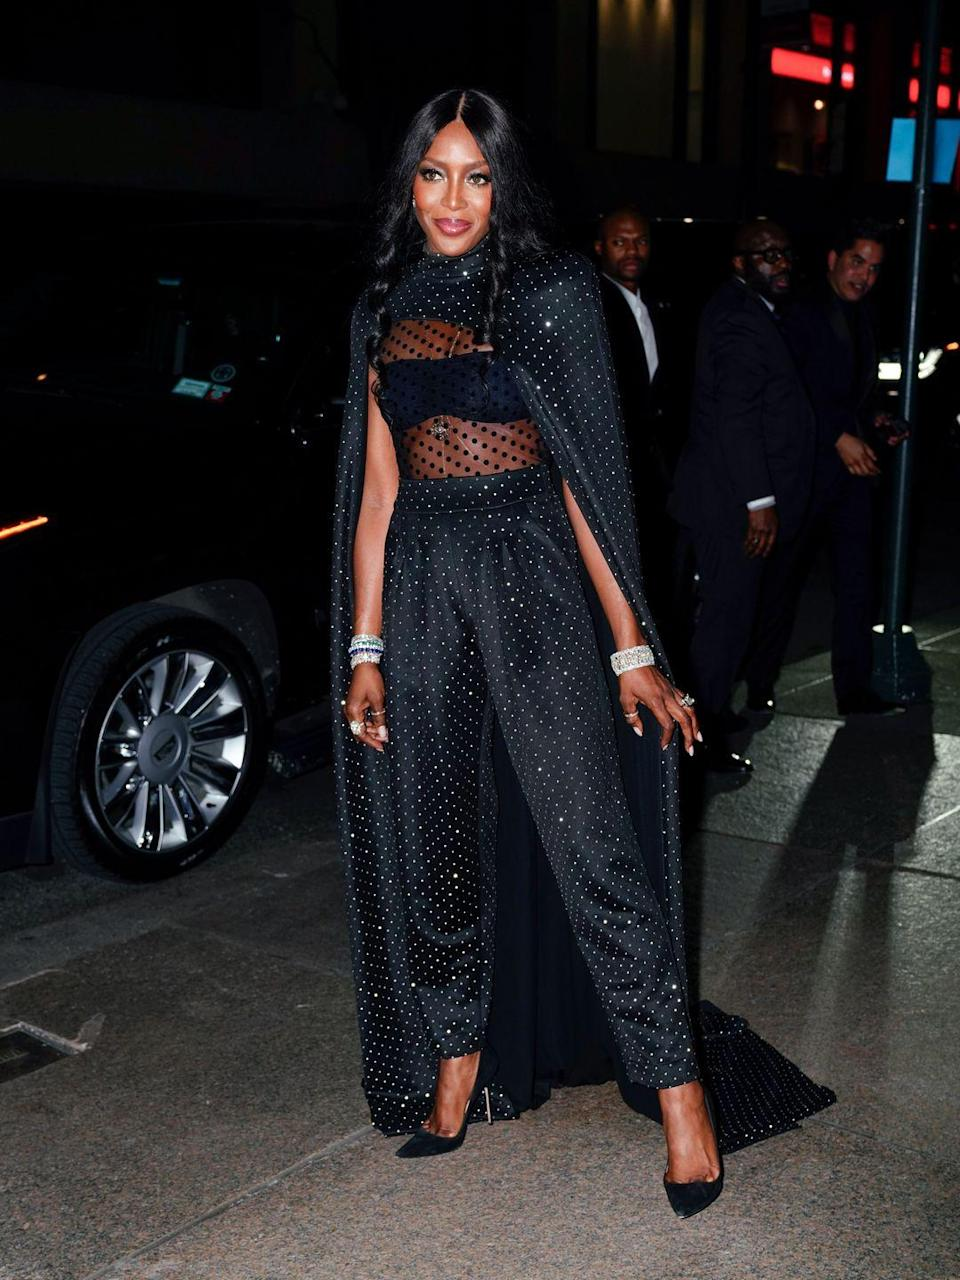 """<p>Naomi Campbell donned a Balmain cape and sheer polka dot bodice for Marc Jacobs' nuptials and looked incredible, debunking the <a href=""""https://www.cosmopolitan.com/uk/fashion/style/a35829/how-to-wear-black-to-a-wedding-dresses/"""" rel=""""nofollow noopener"""" target=""""_blank"""" data-ylk=""""slk:'you can't wear black to a wedding' myth"""" class=""""link rapid-noclick-resp"""">'you can't wear black to a wedding' myth</a>.</p>"""